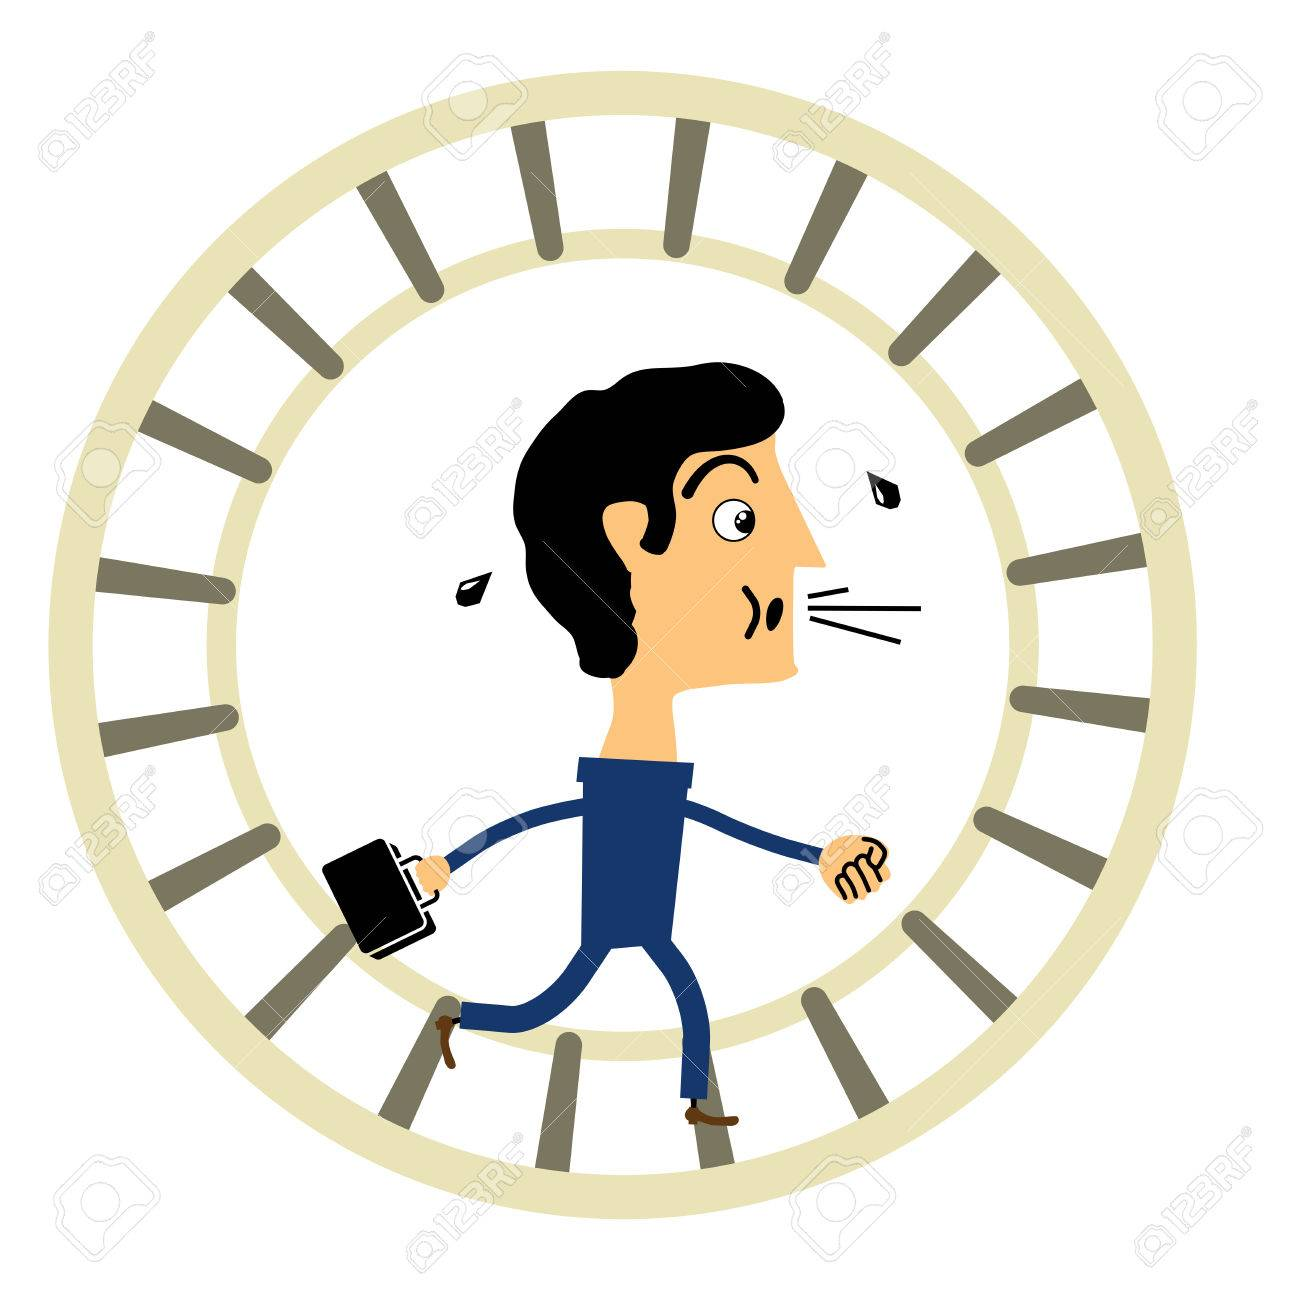 businessman running in a wheel on a circle Stock Vector - 24192616